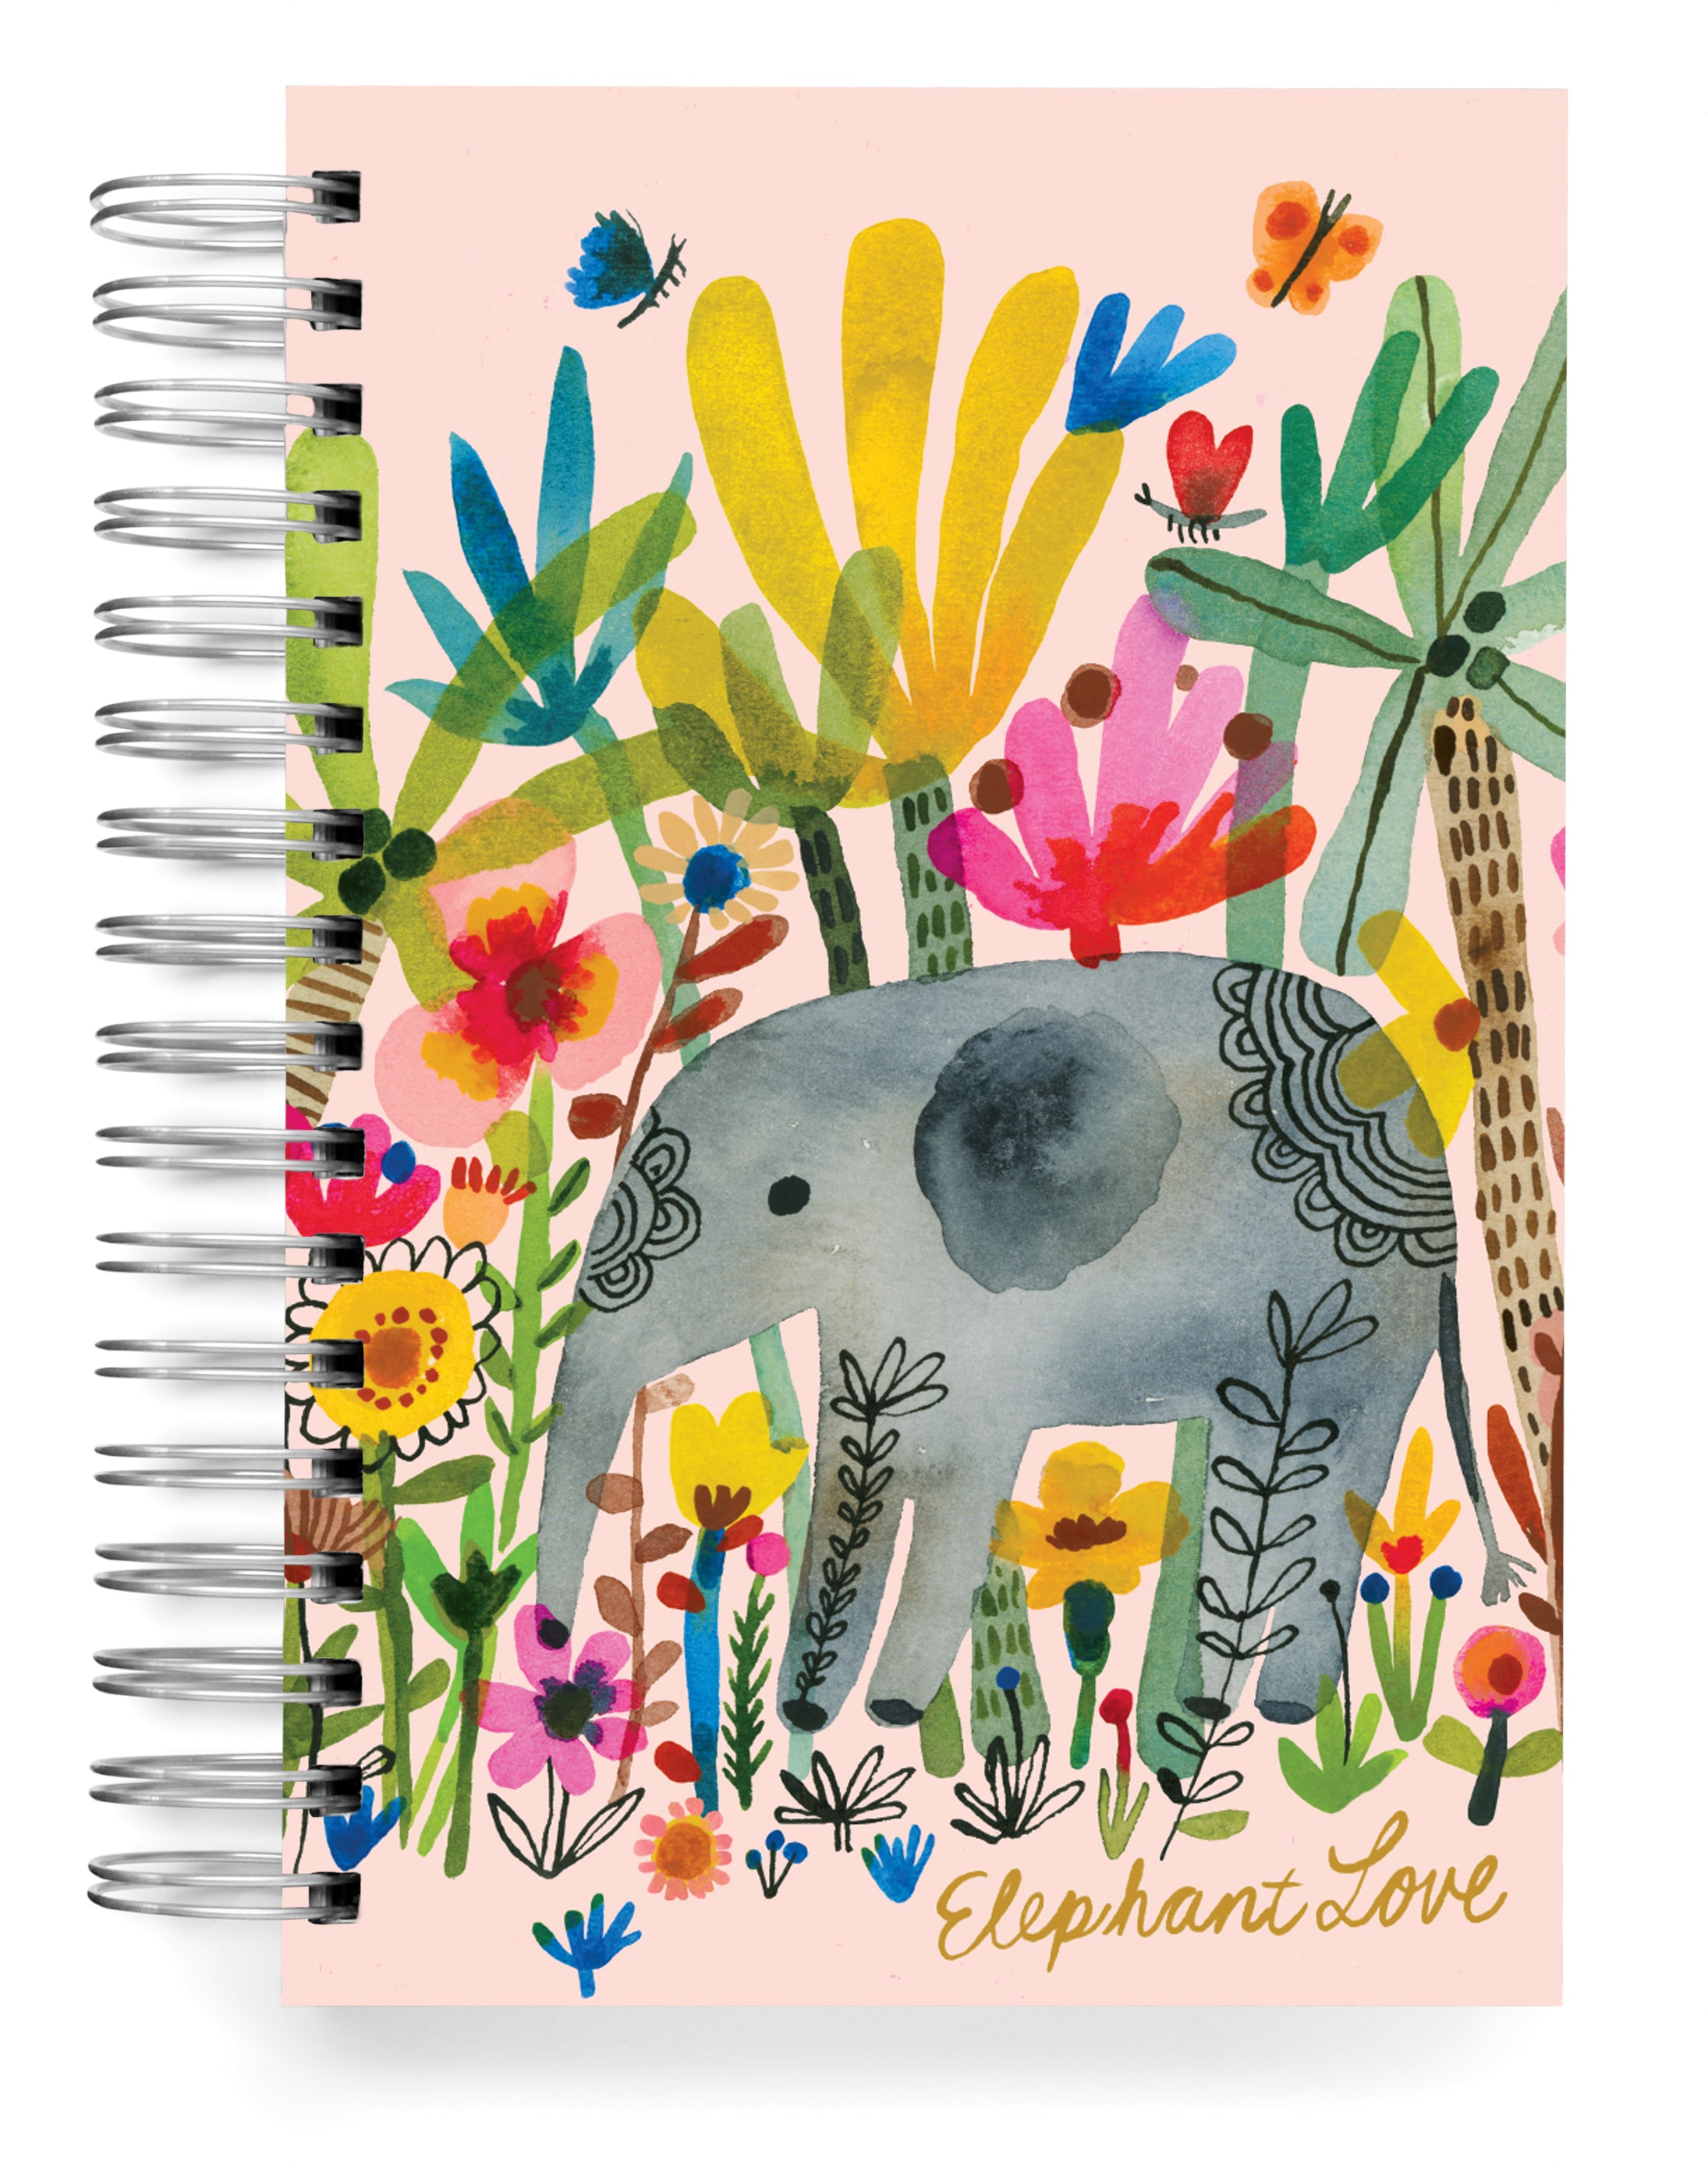 Elephant Love Jumbo Journal and Planner set